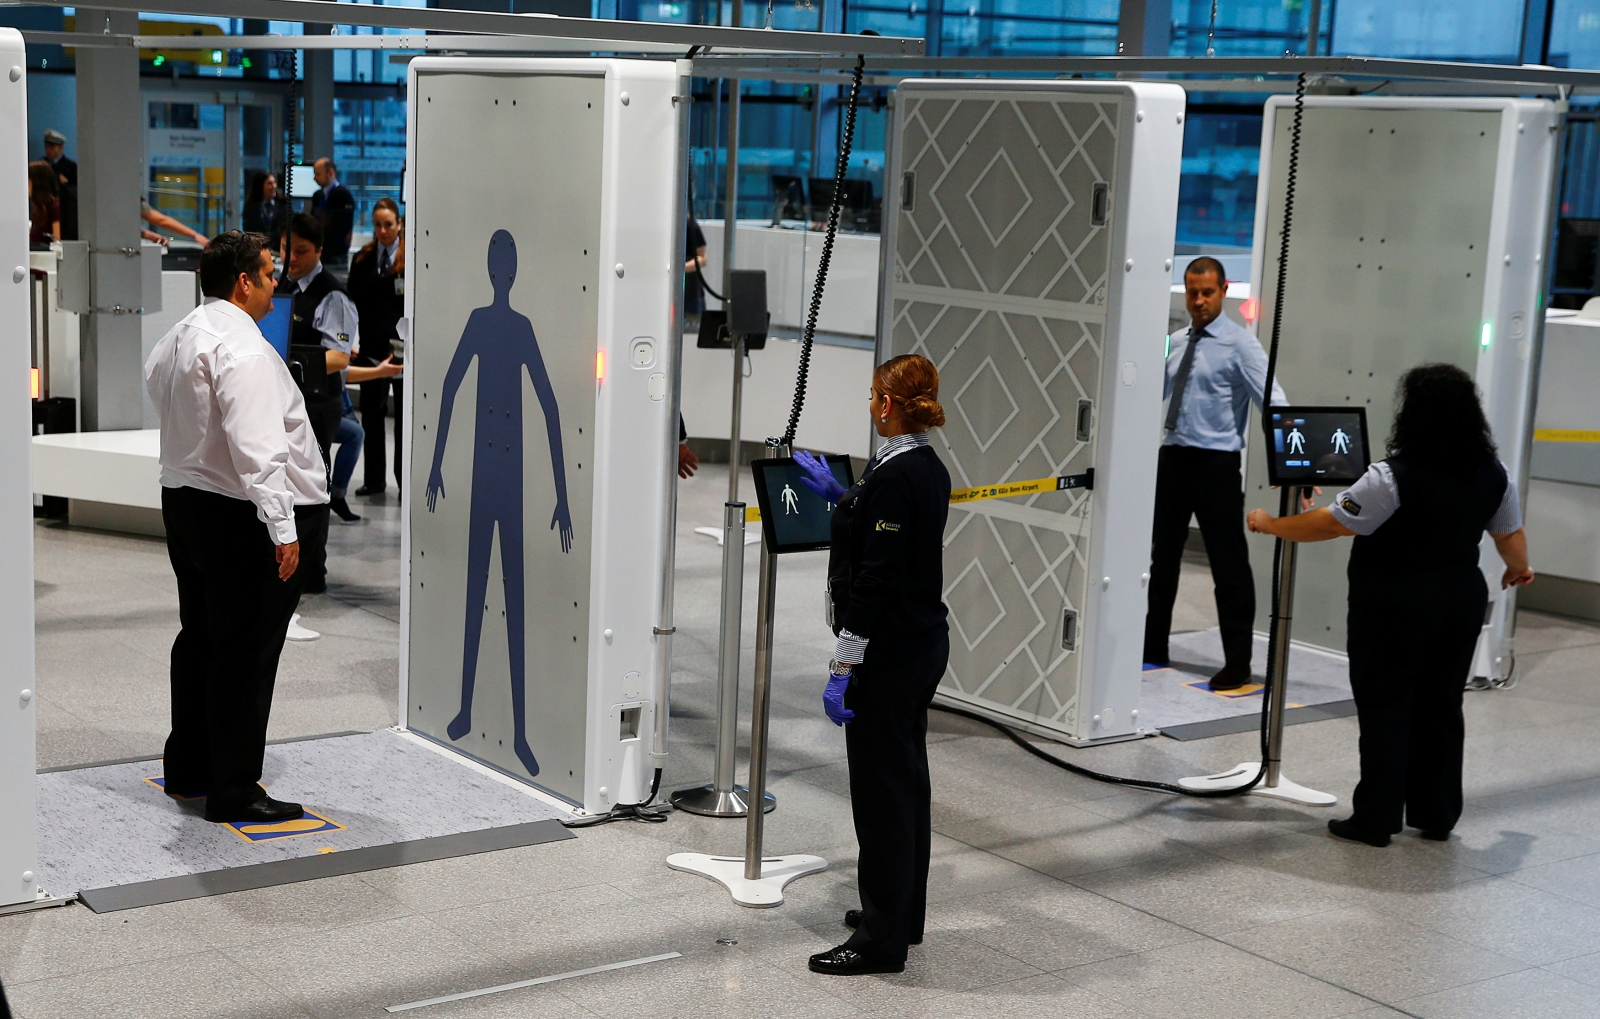 Dubai Airport To Have Digital Tunnel That Will Scan People